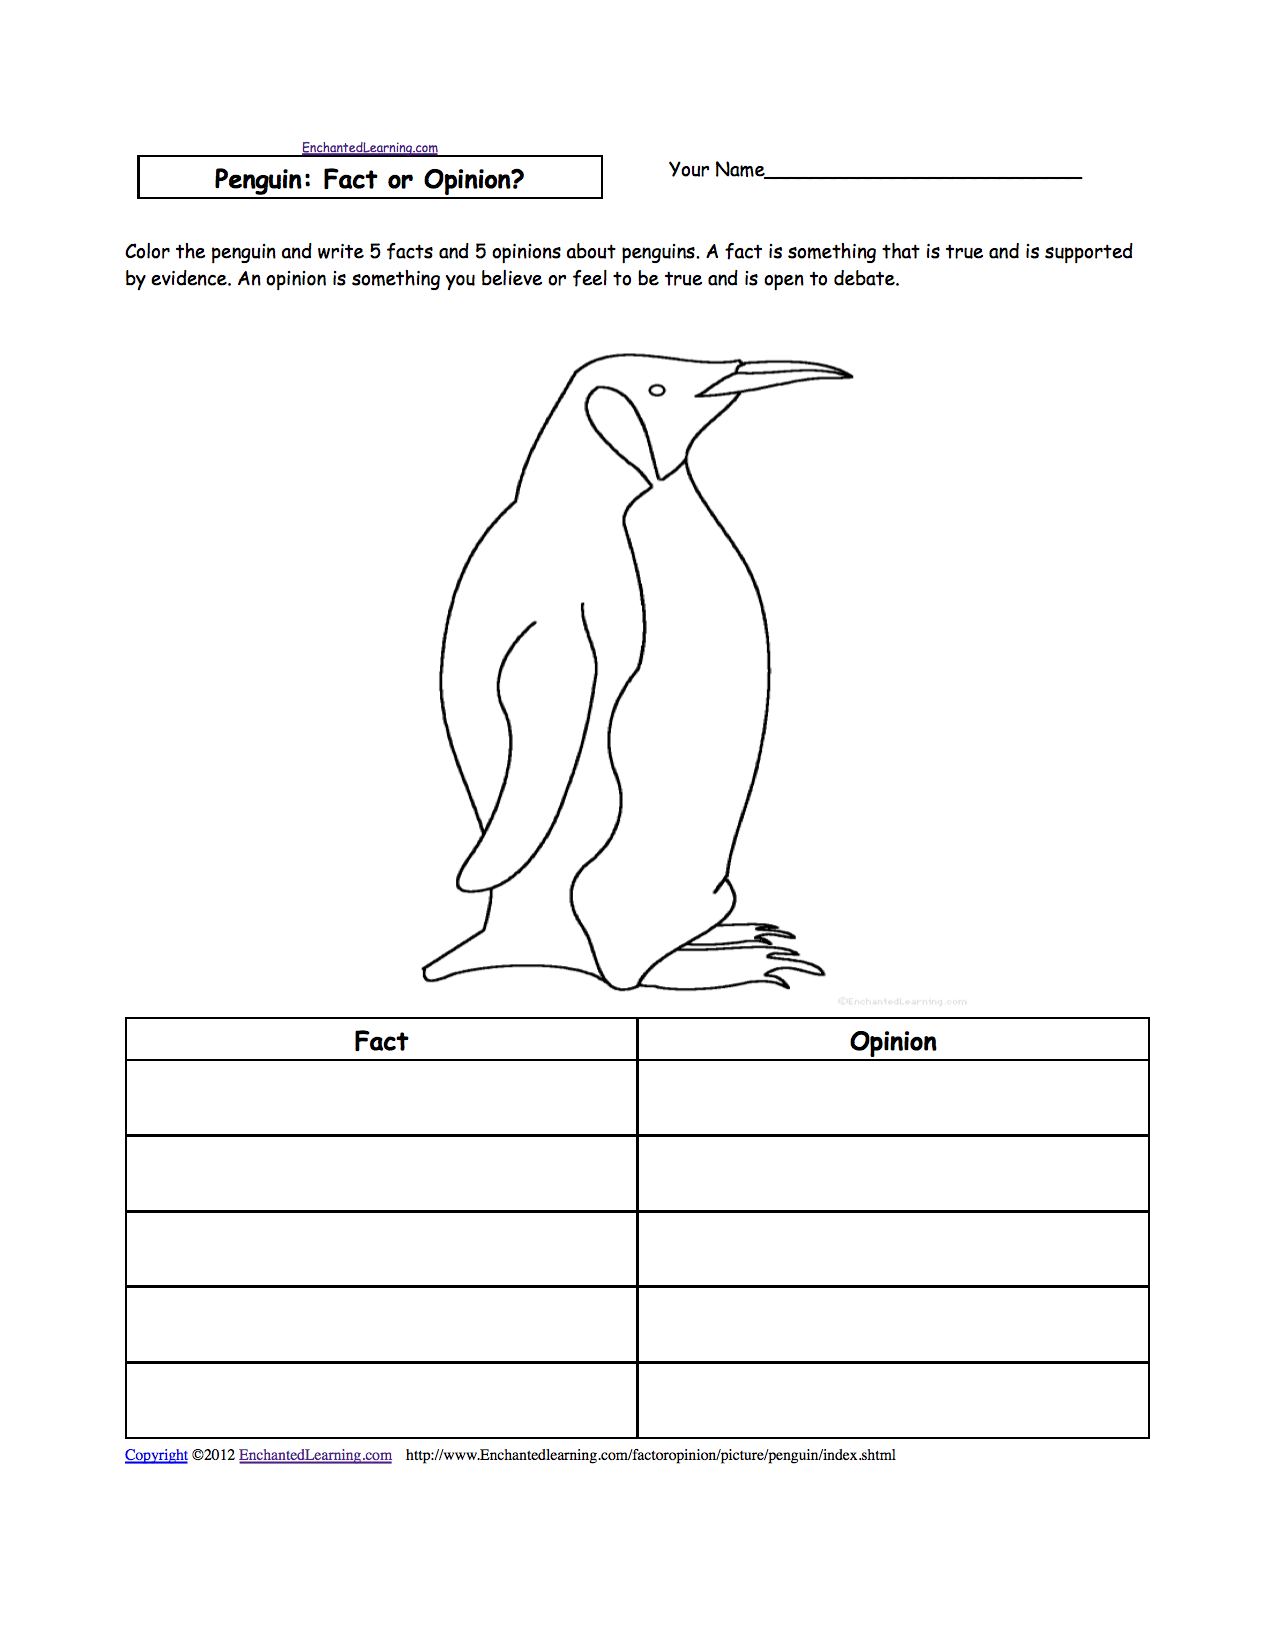 Worksheets Penguin Worksheets penguins at enchantedlearning com penguin fact or opinion